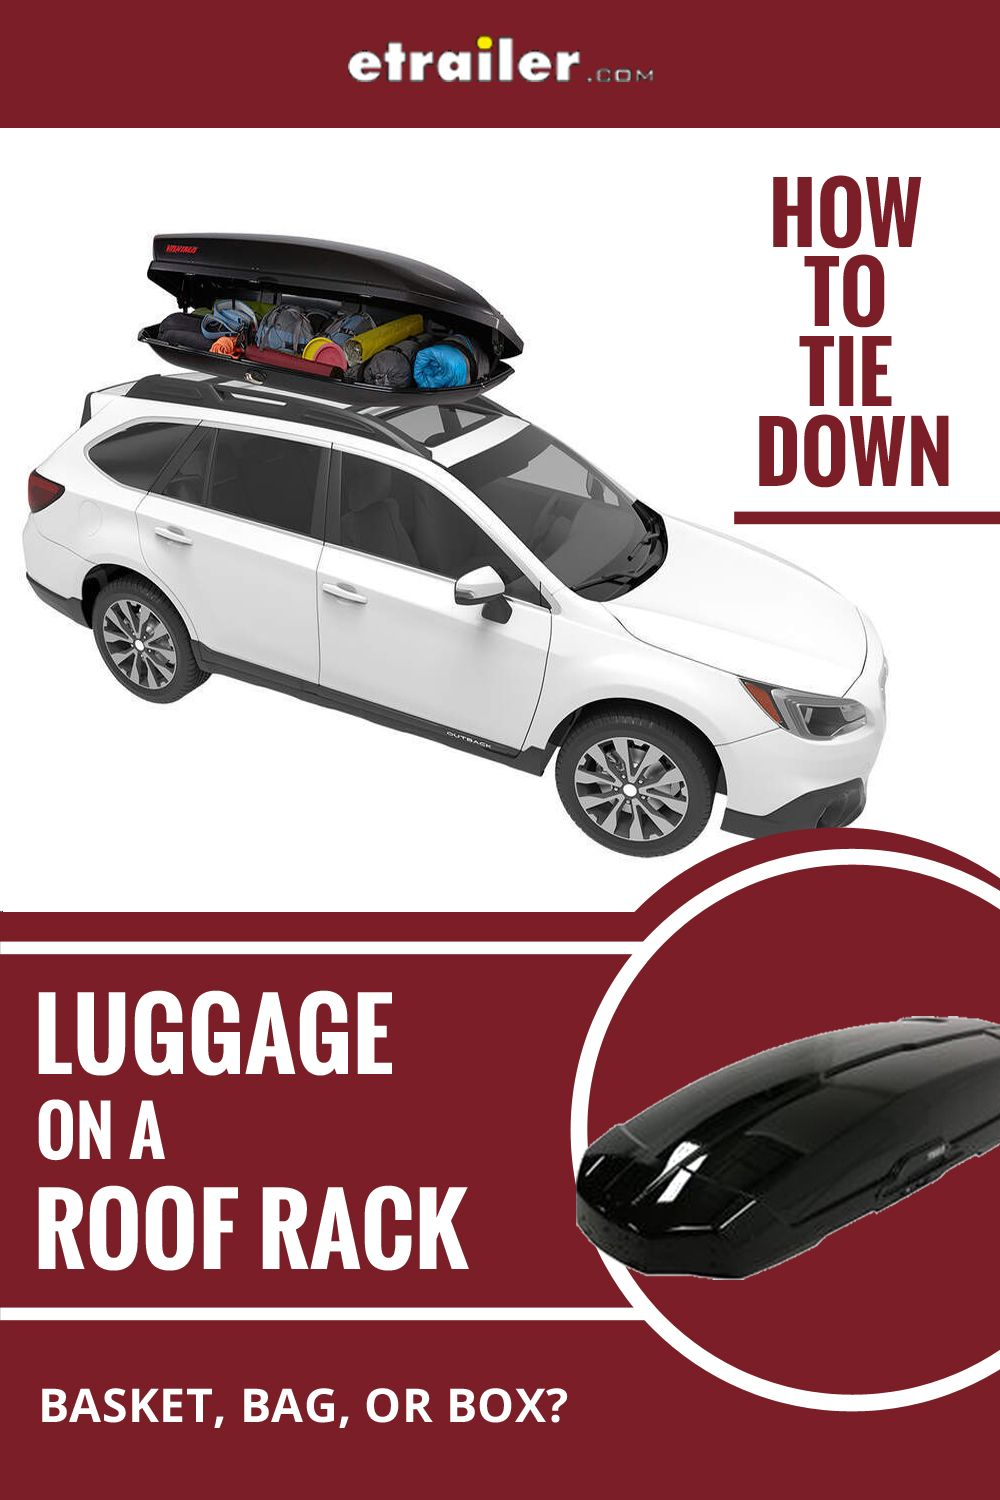 How To Tie Down Luggage On A Roof Rack Roof Rack Roof Rack Basket Luggage